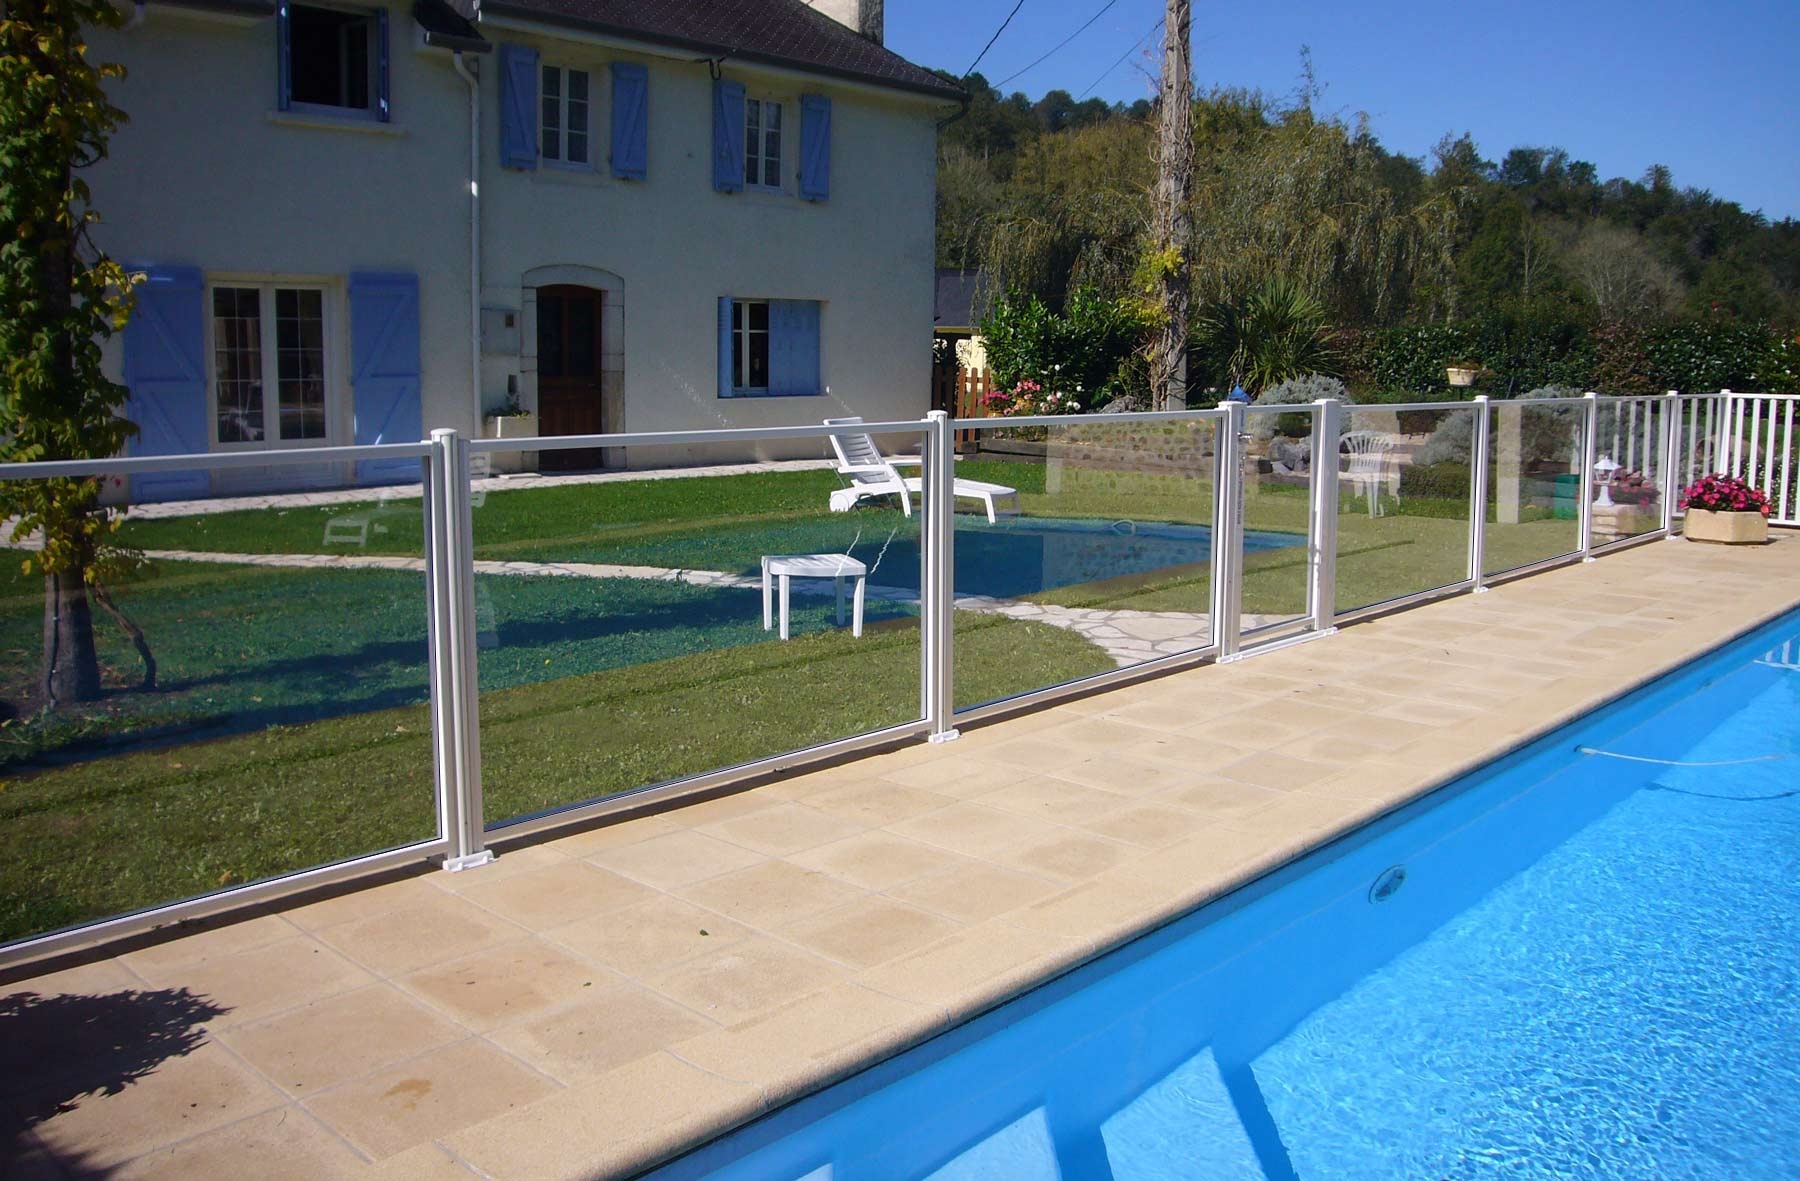 Les barri res en verre de protection d 39 atlantic barriere for Barrieres de protection pour piscine